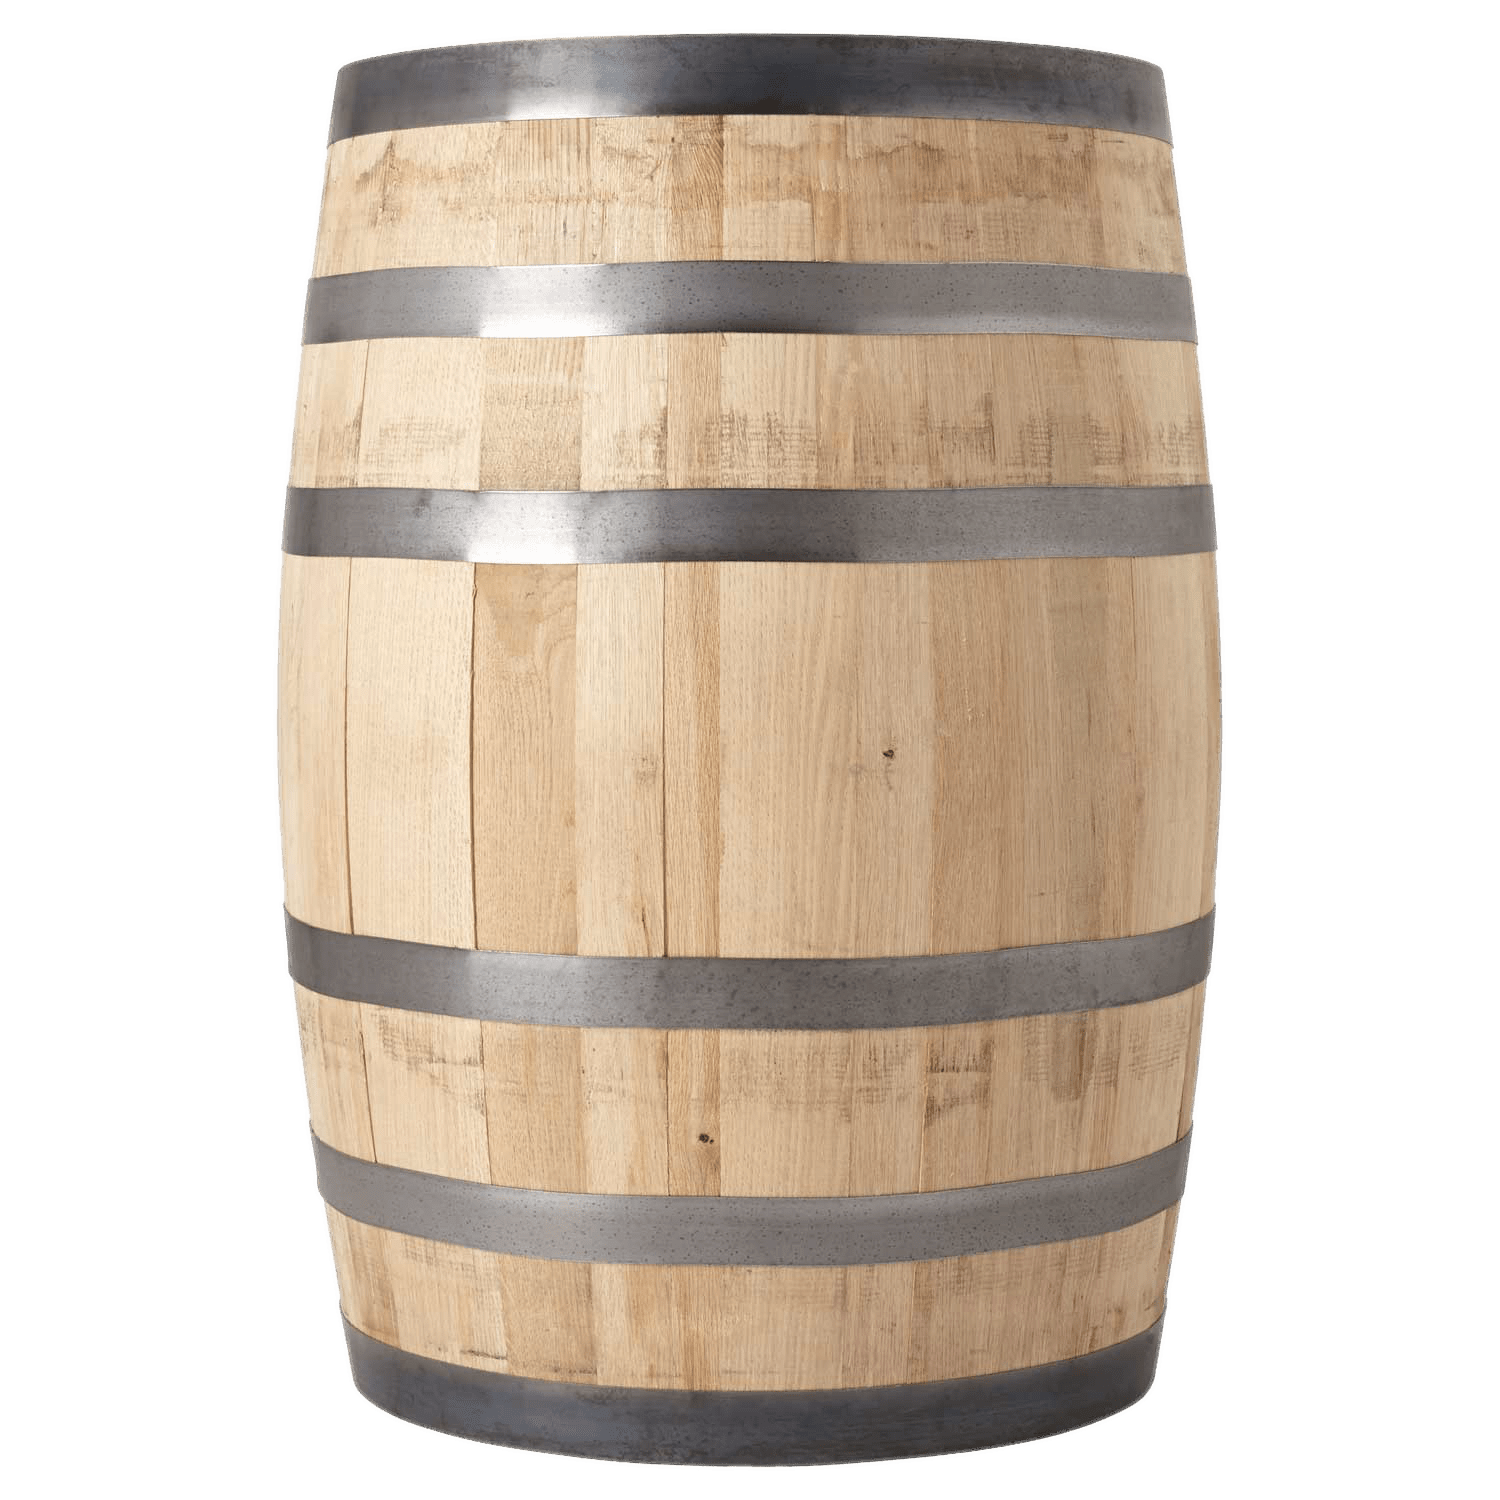 Whiskey Barrel transparent PNG.